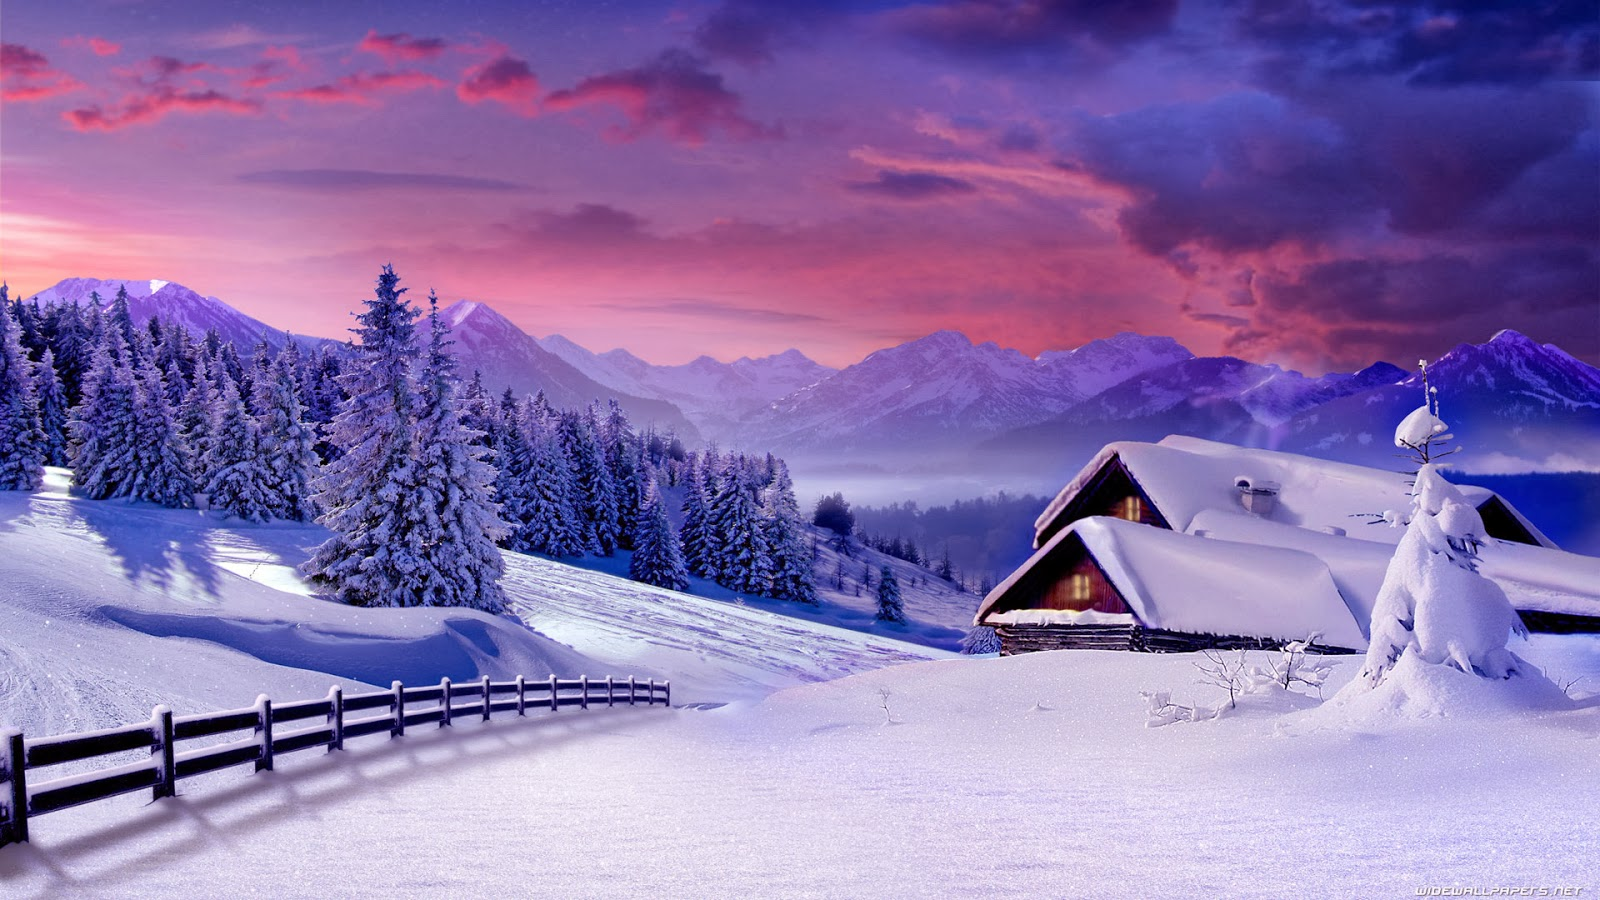 Winter Scenes Wallpapers Backgrounds 1600x900